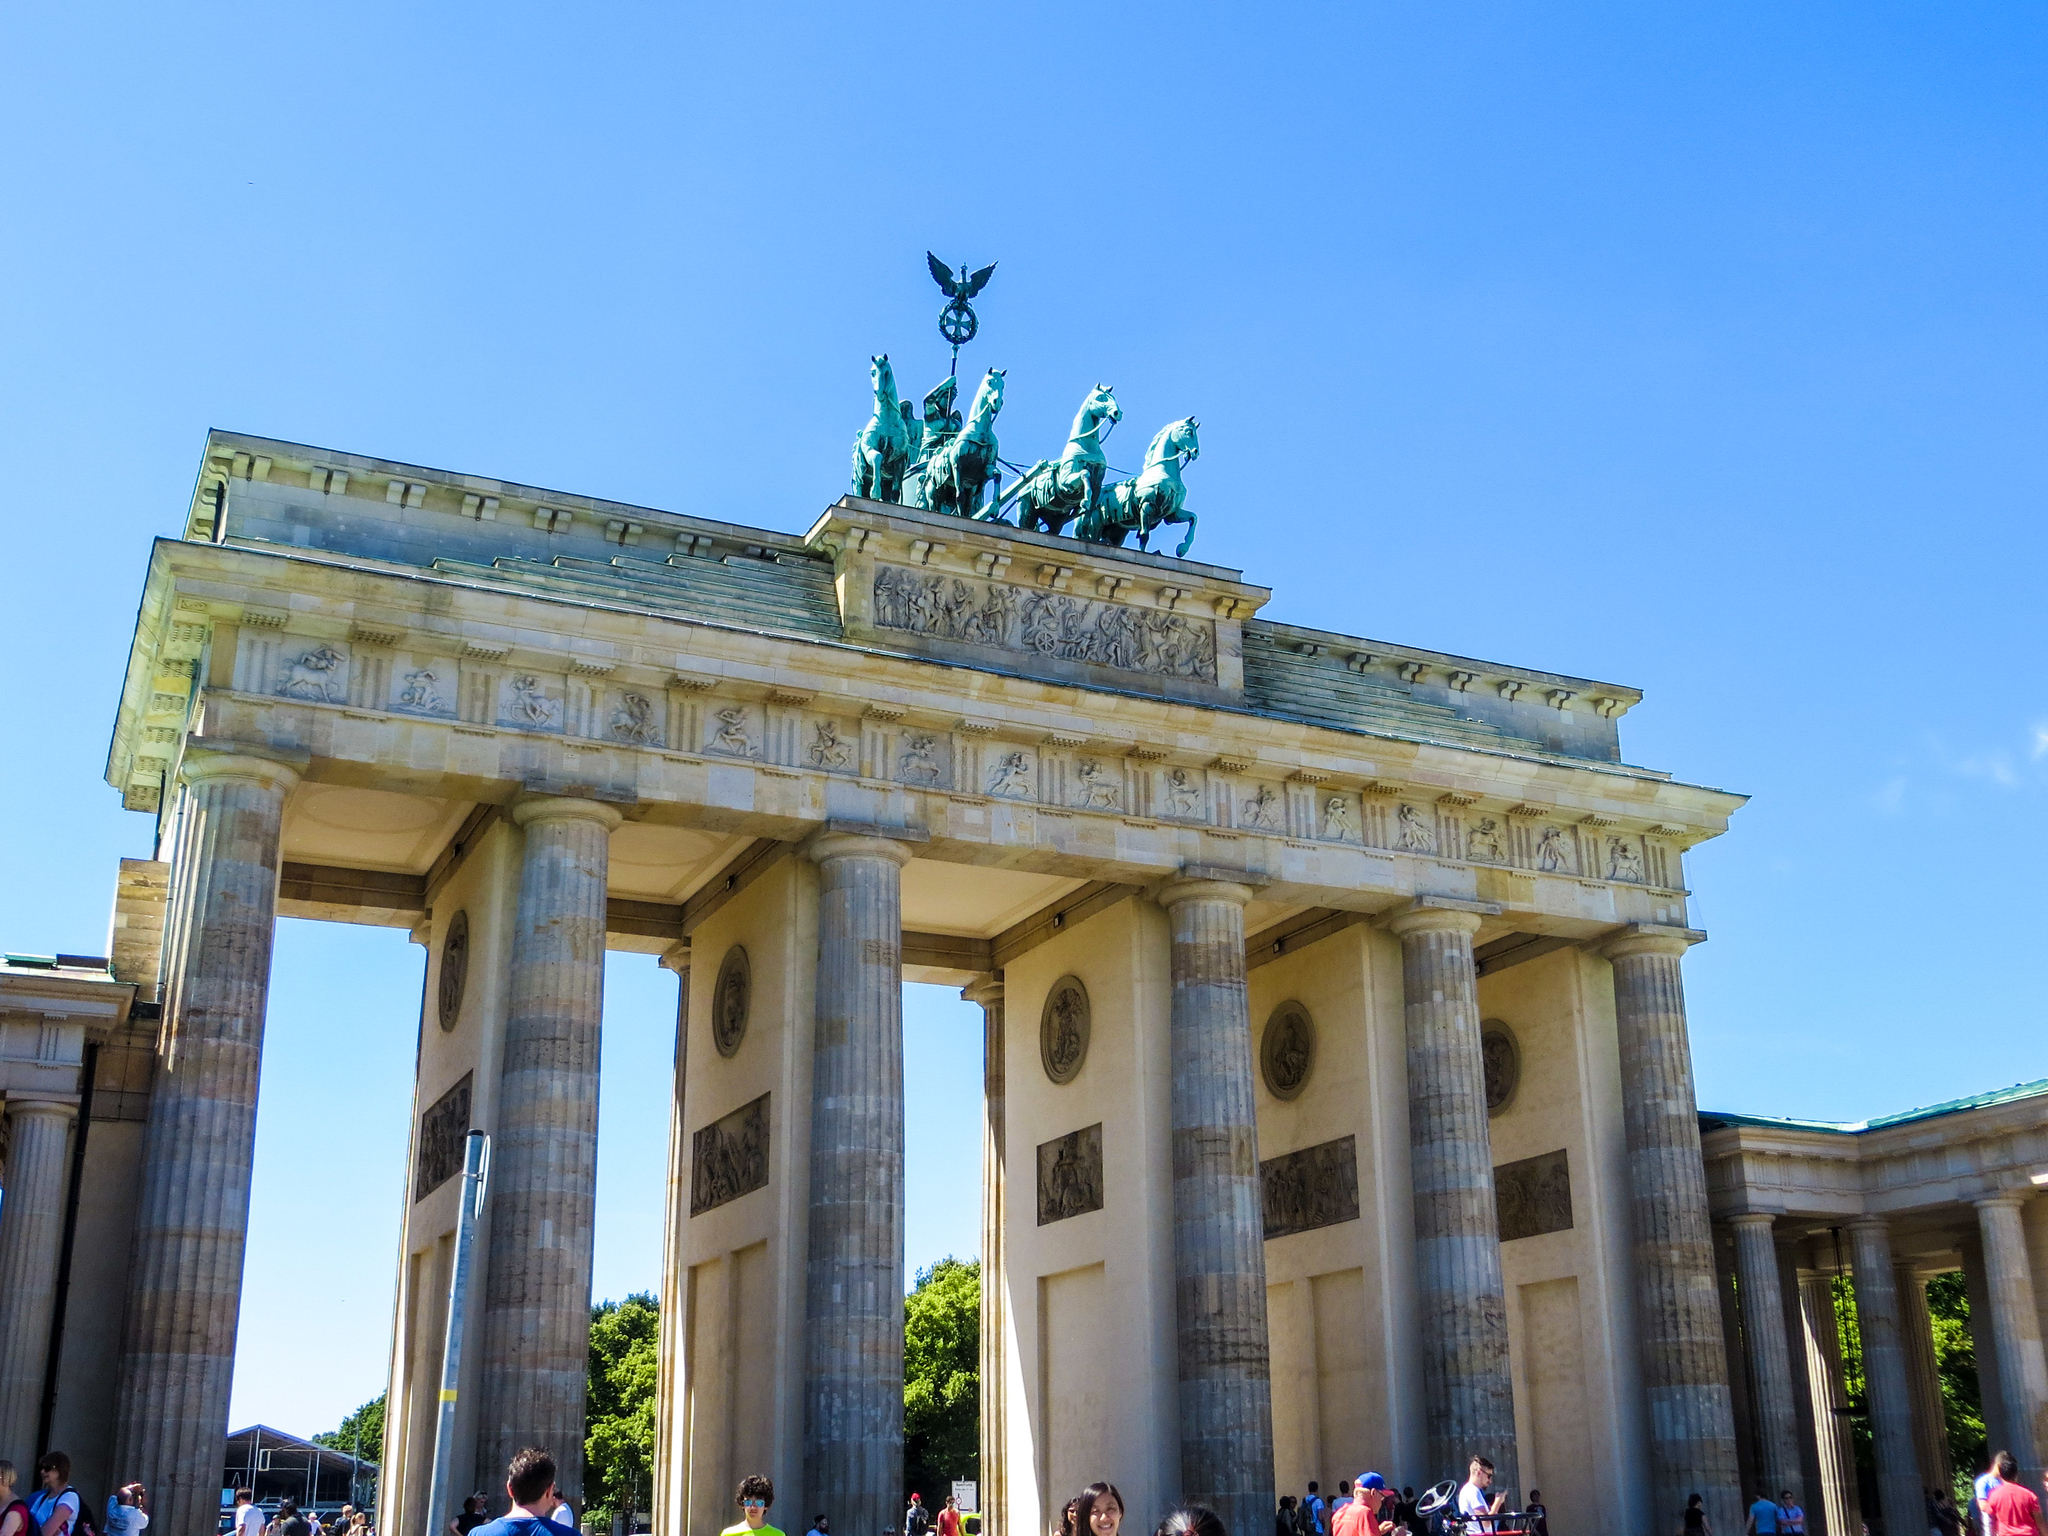 berlin is one of the coolest cities for traveling alone in europe